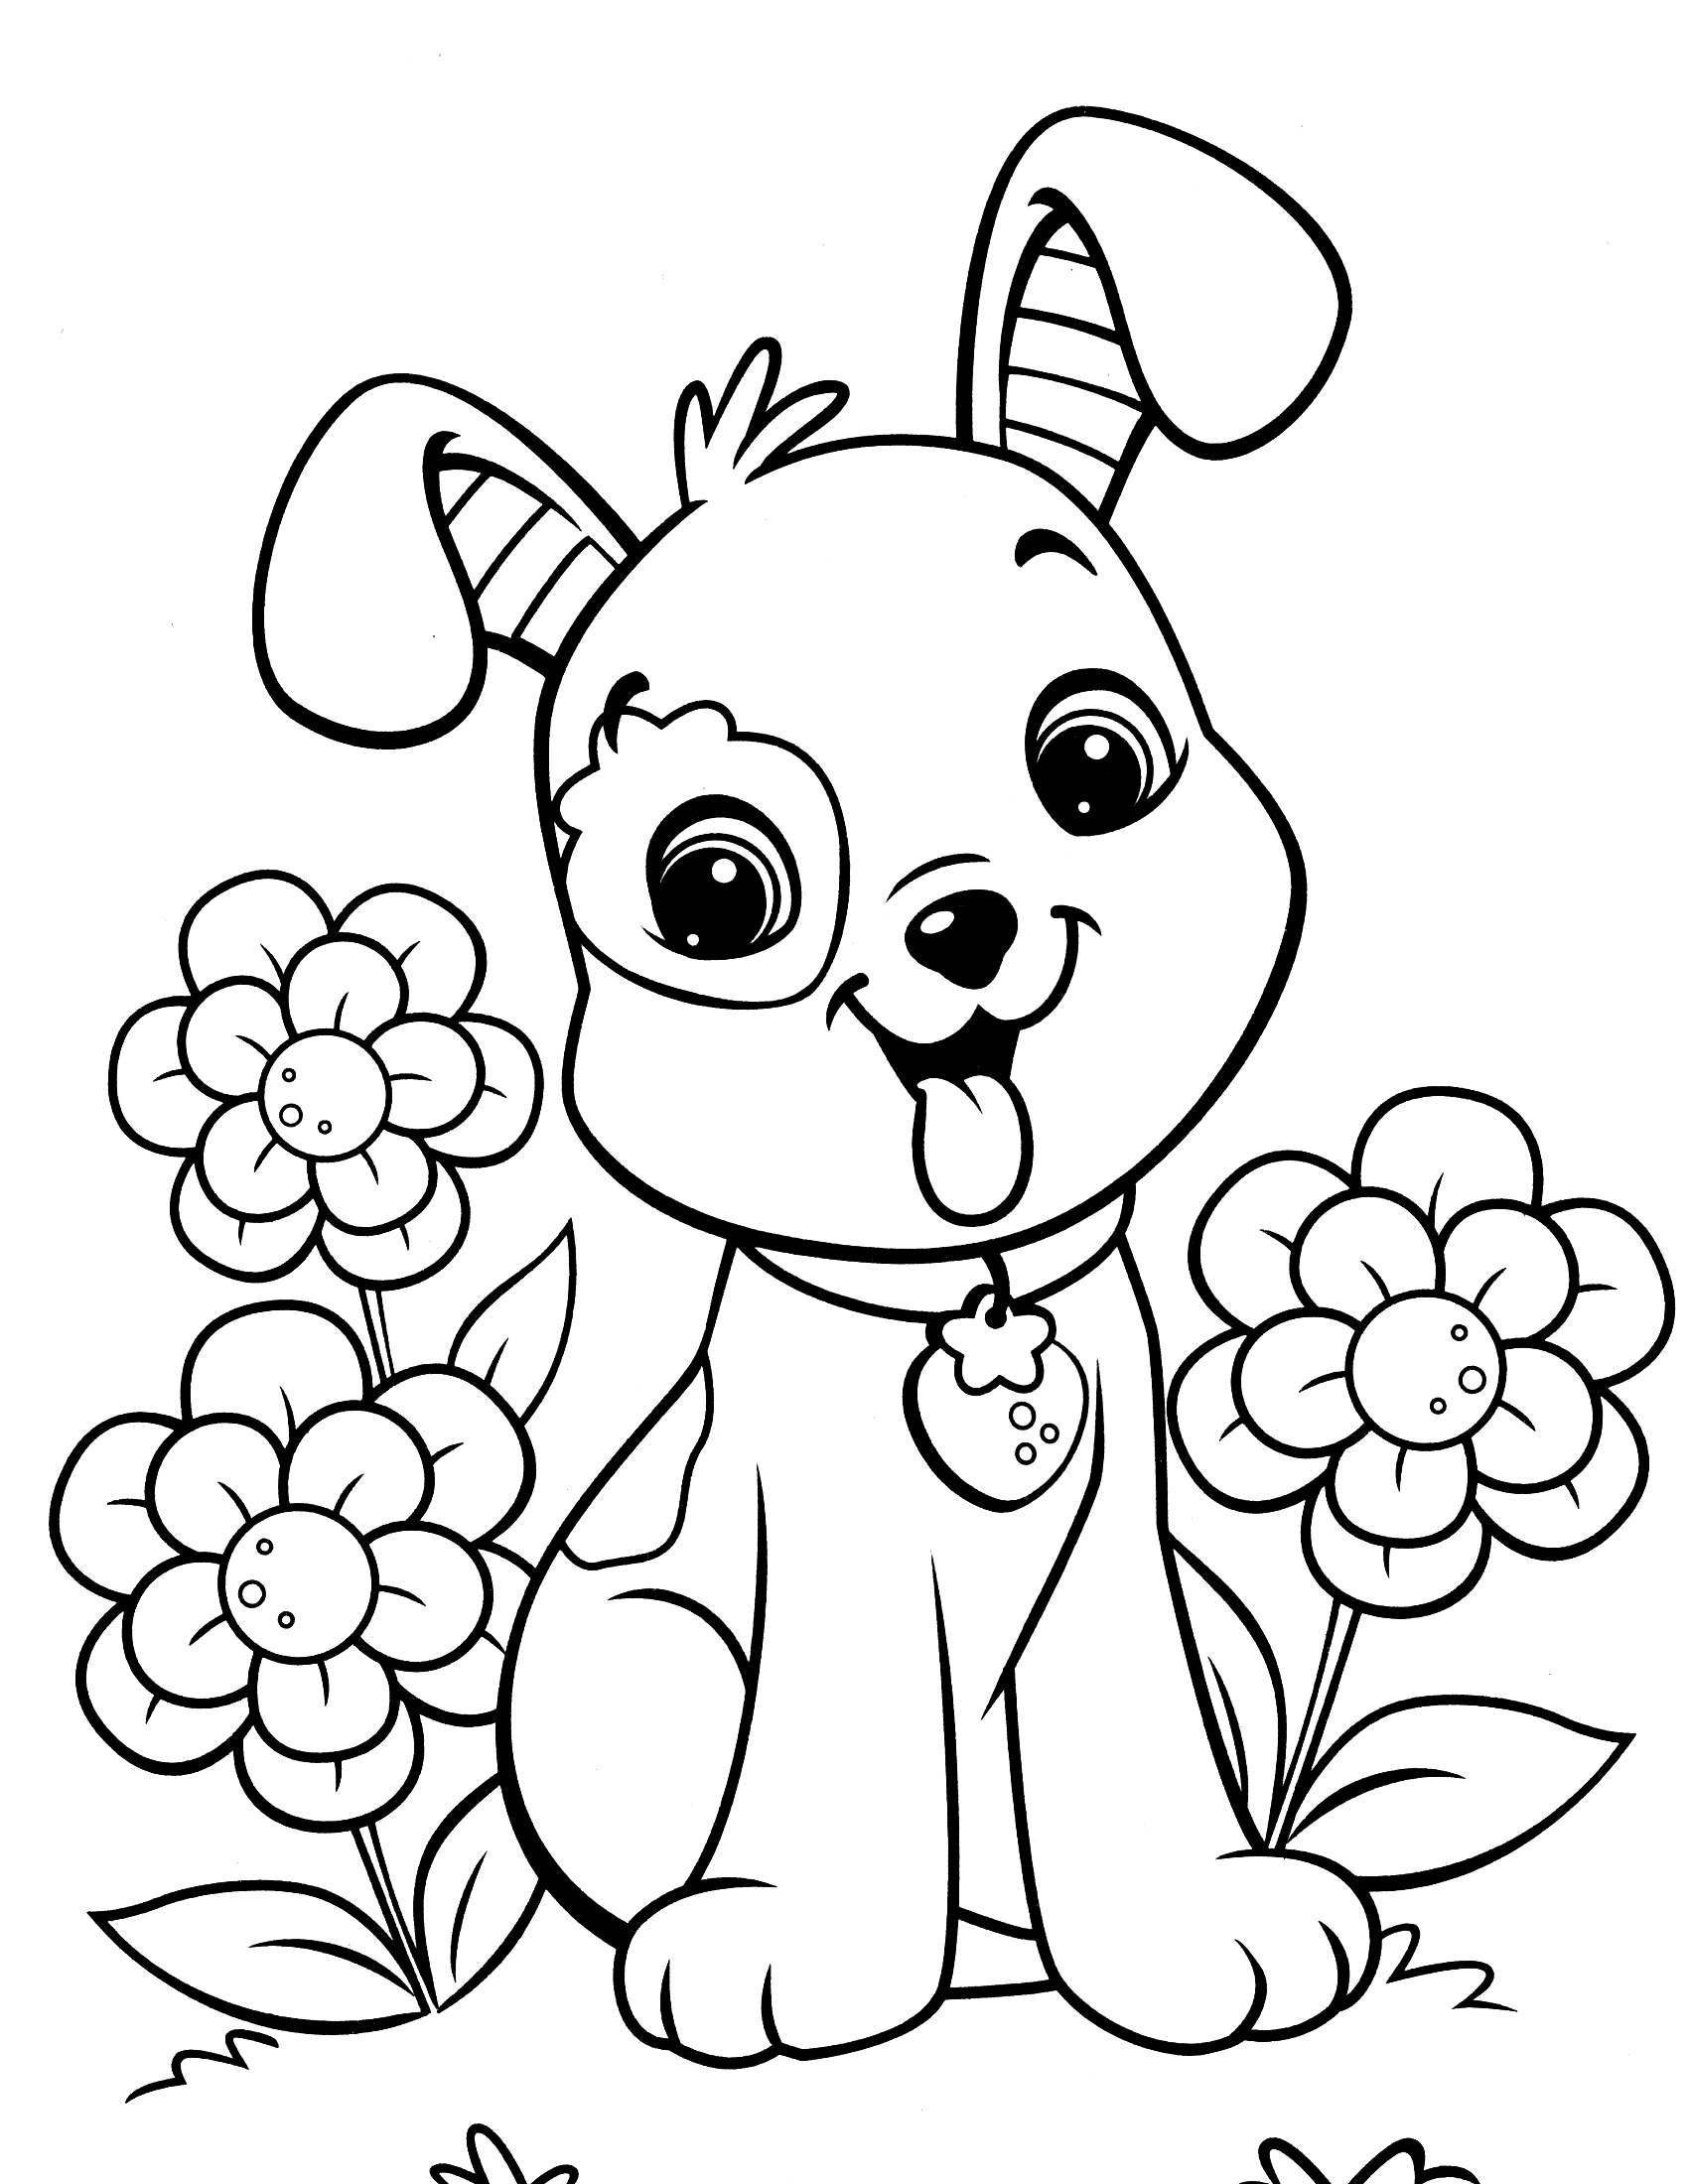 dogs to colour in and print printable dogs coloring pages to kids print dogs and colour in to